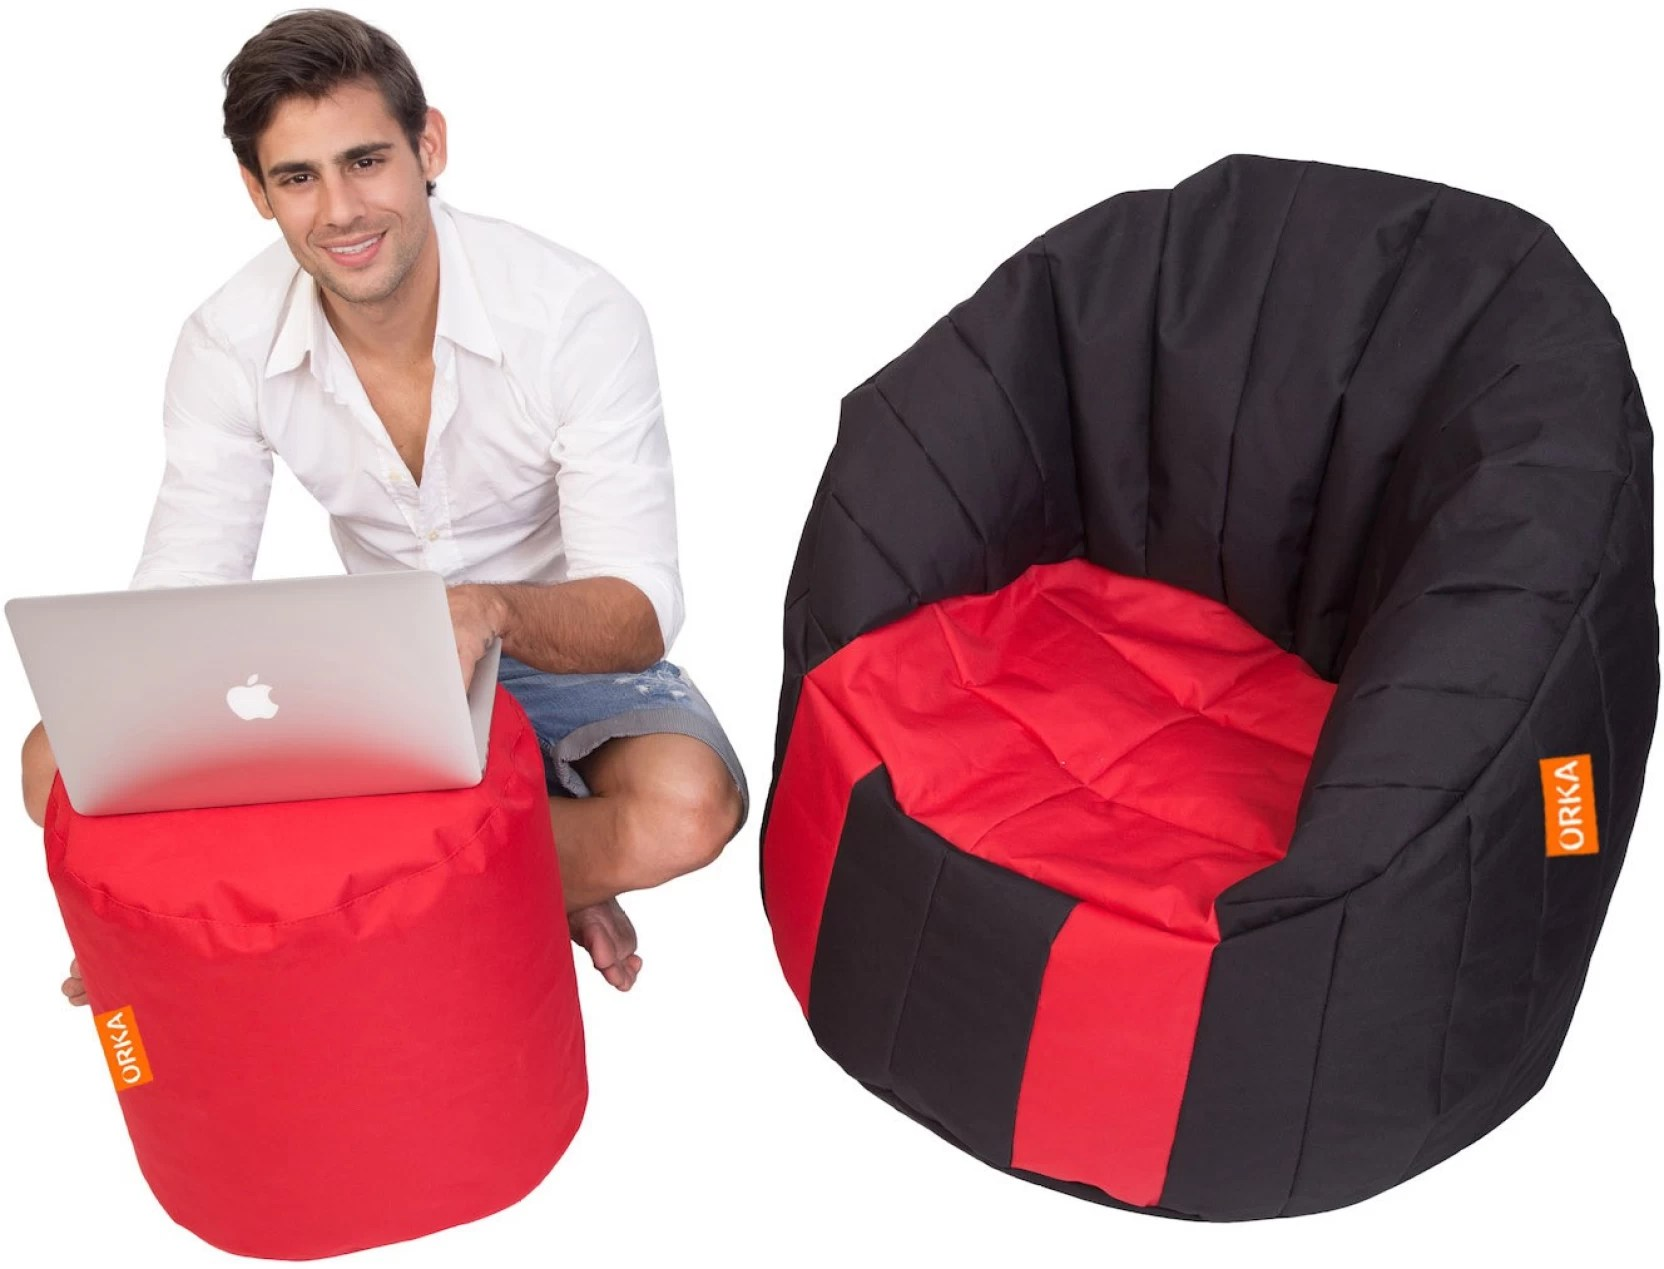 Bean Bags Chair Orka Bean Bags Xxxl Chair Without Beans